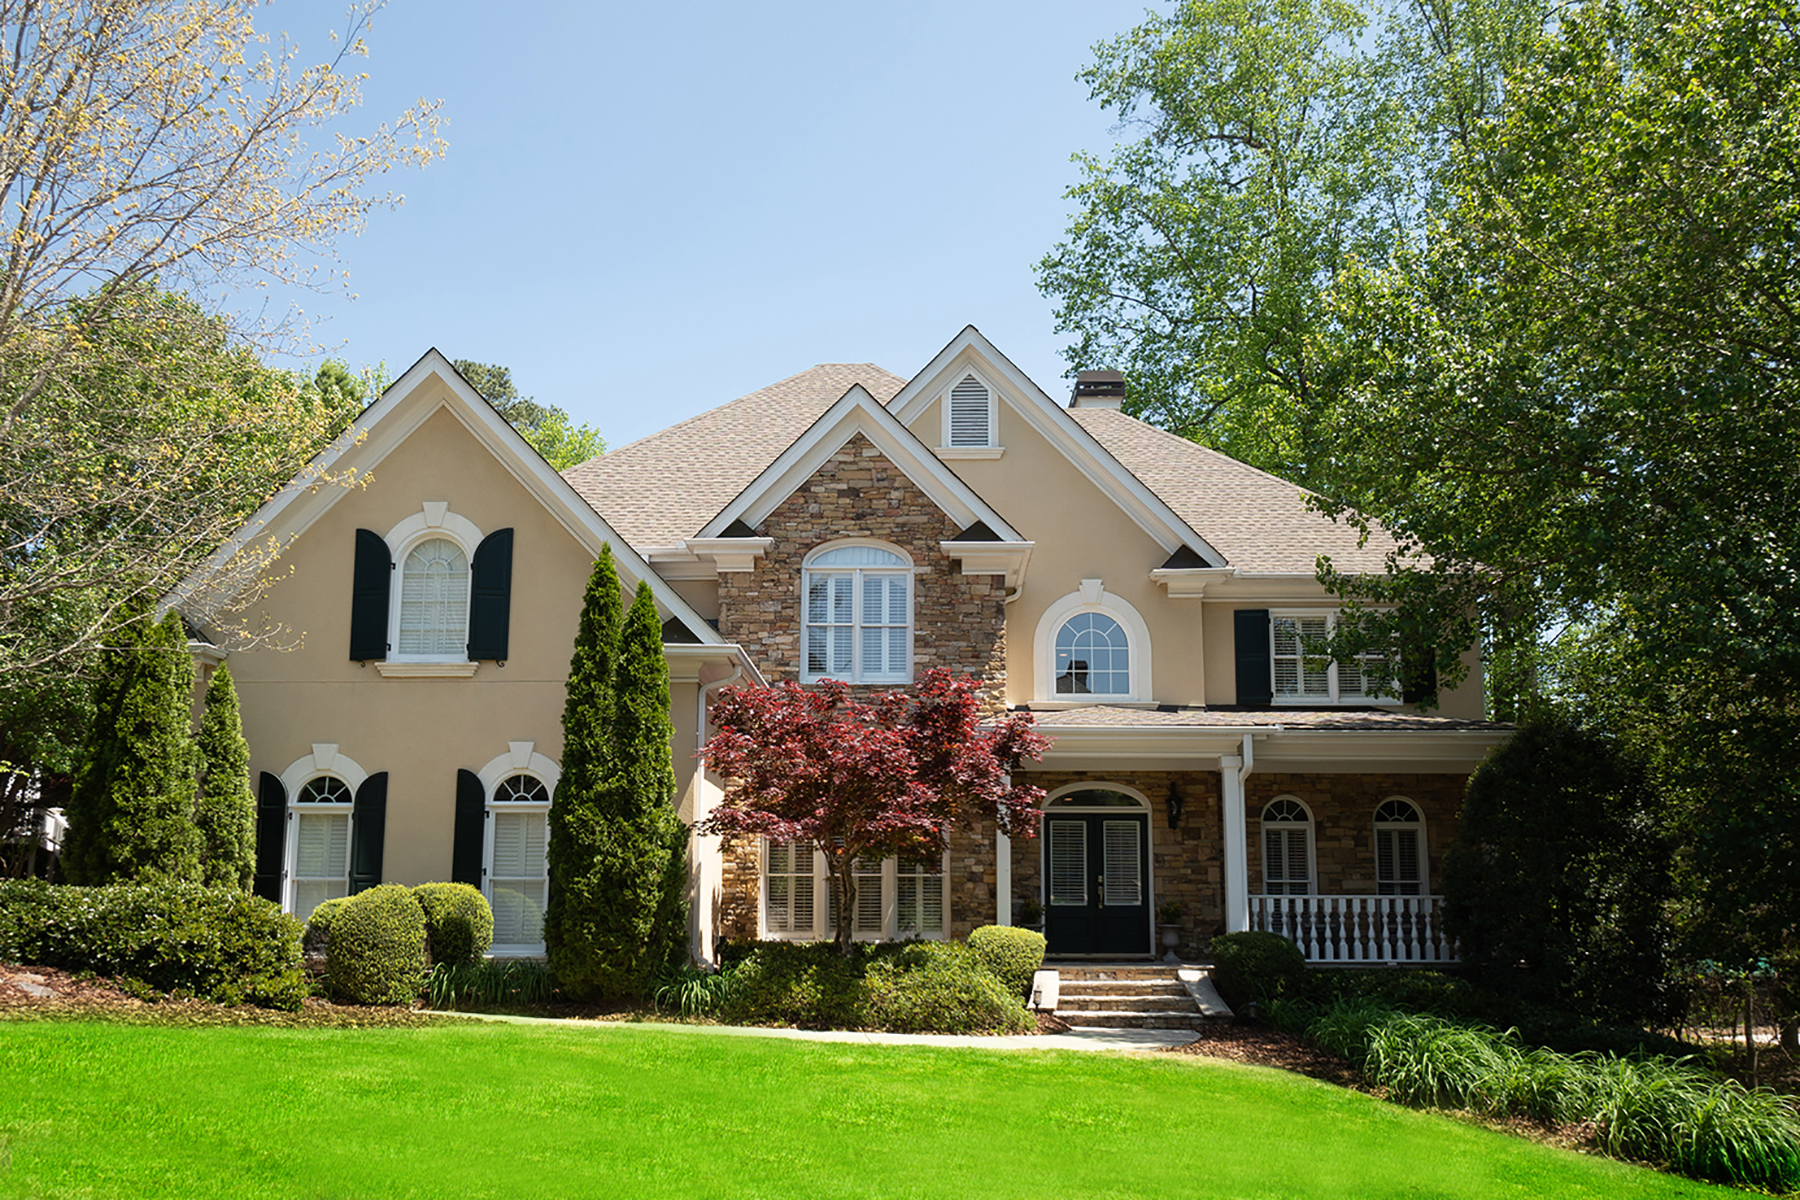 Single Family Home for Sale at Totally Updated in Top Johns Creek School District 9835 Autry Falls Dr Johns Creek, Georgia 30022 United States